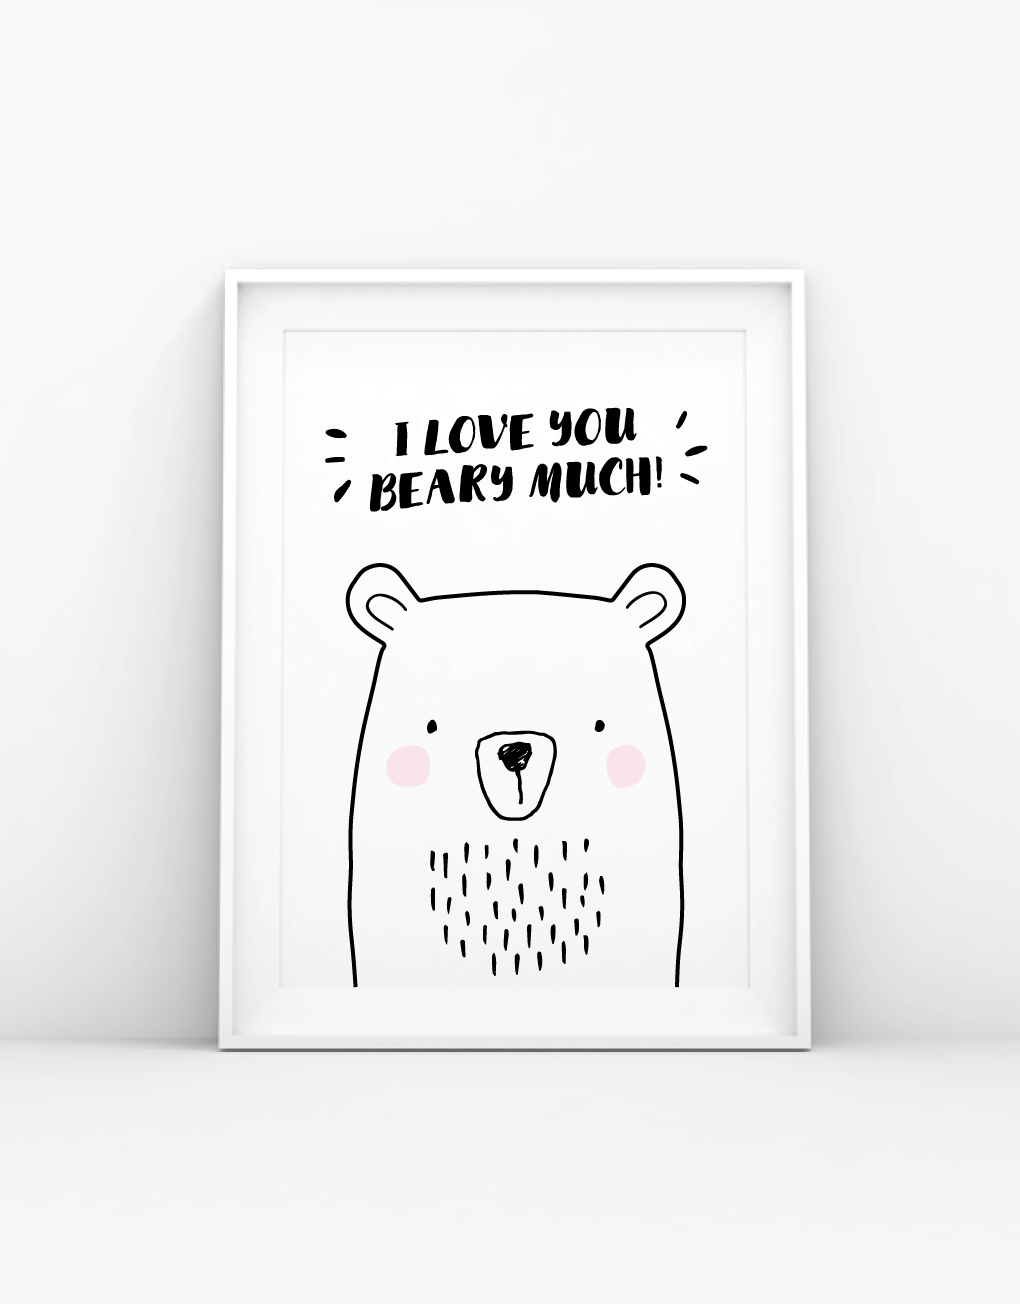 I Love You Beary Much Print Made By Hello Dolly Designs